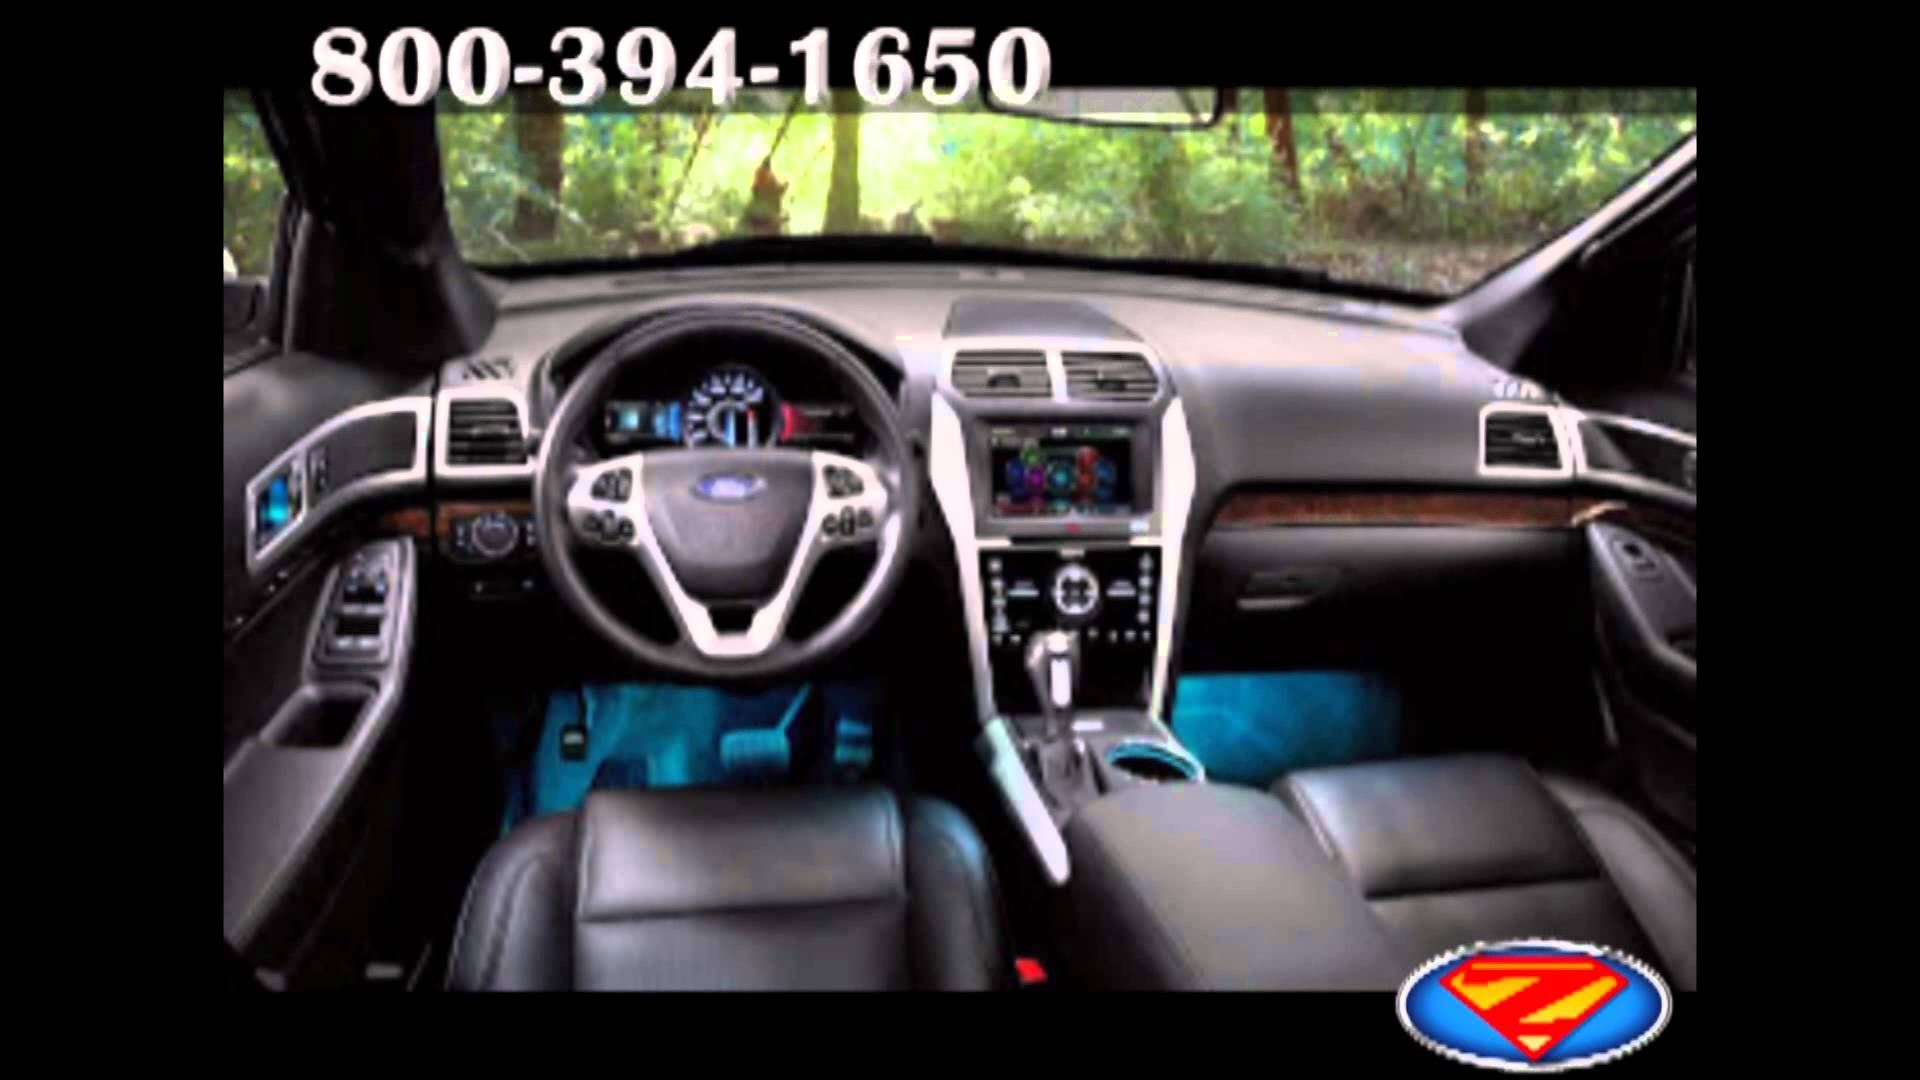 Kansas City, KS 2014 2015 Ford Edge Specials Platte City